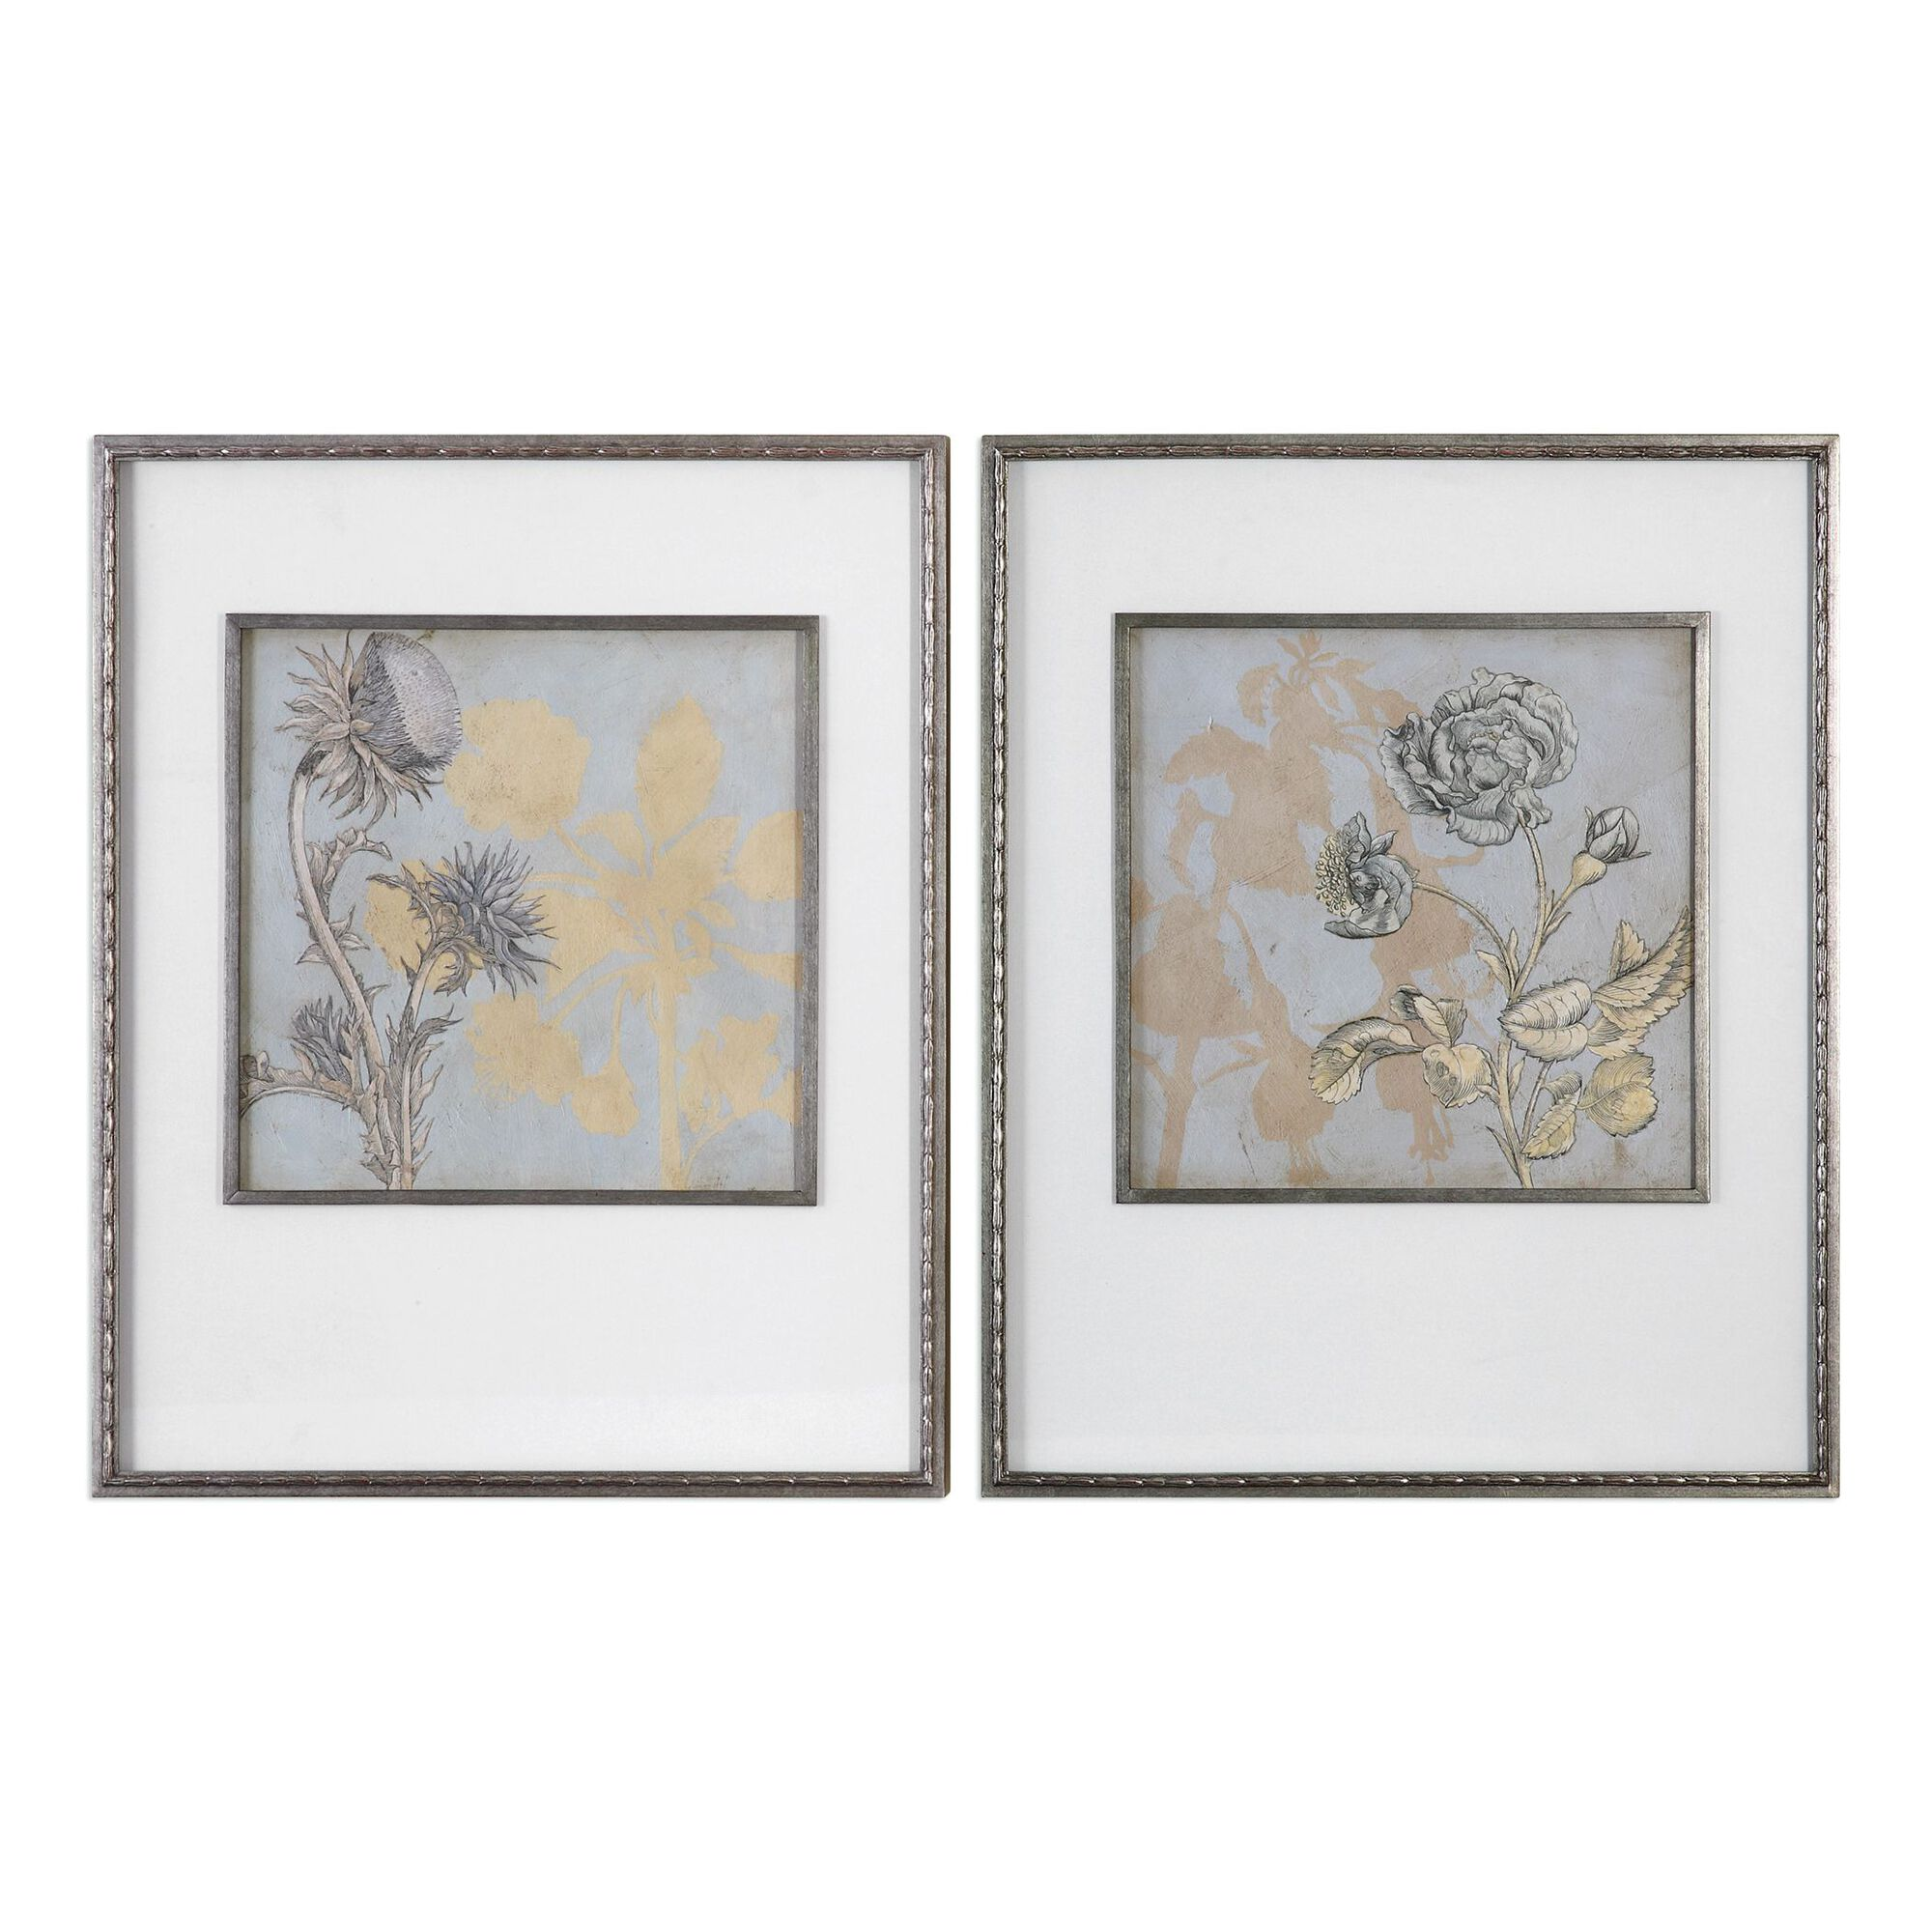 Wall Art Decor Sets: Two-Piece Floral Printed Framed Wall Art Set